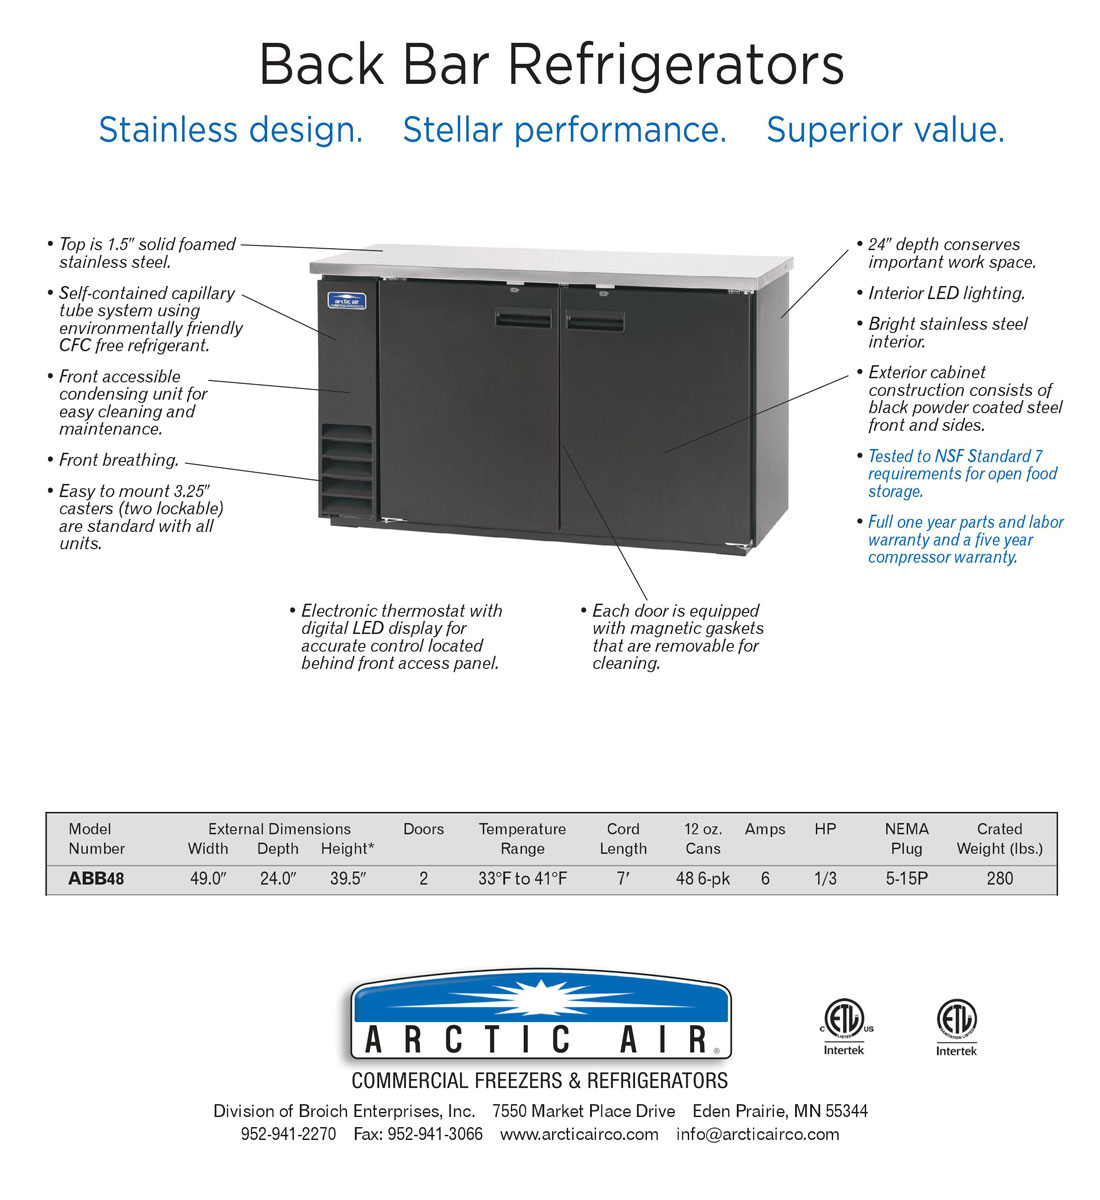 49 Inch Wide Back Bar Refrigerator with 2 Solid Doors and Stainless Steel Top (Arctic Air ABB48) Specification Image